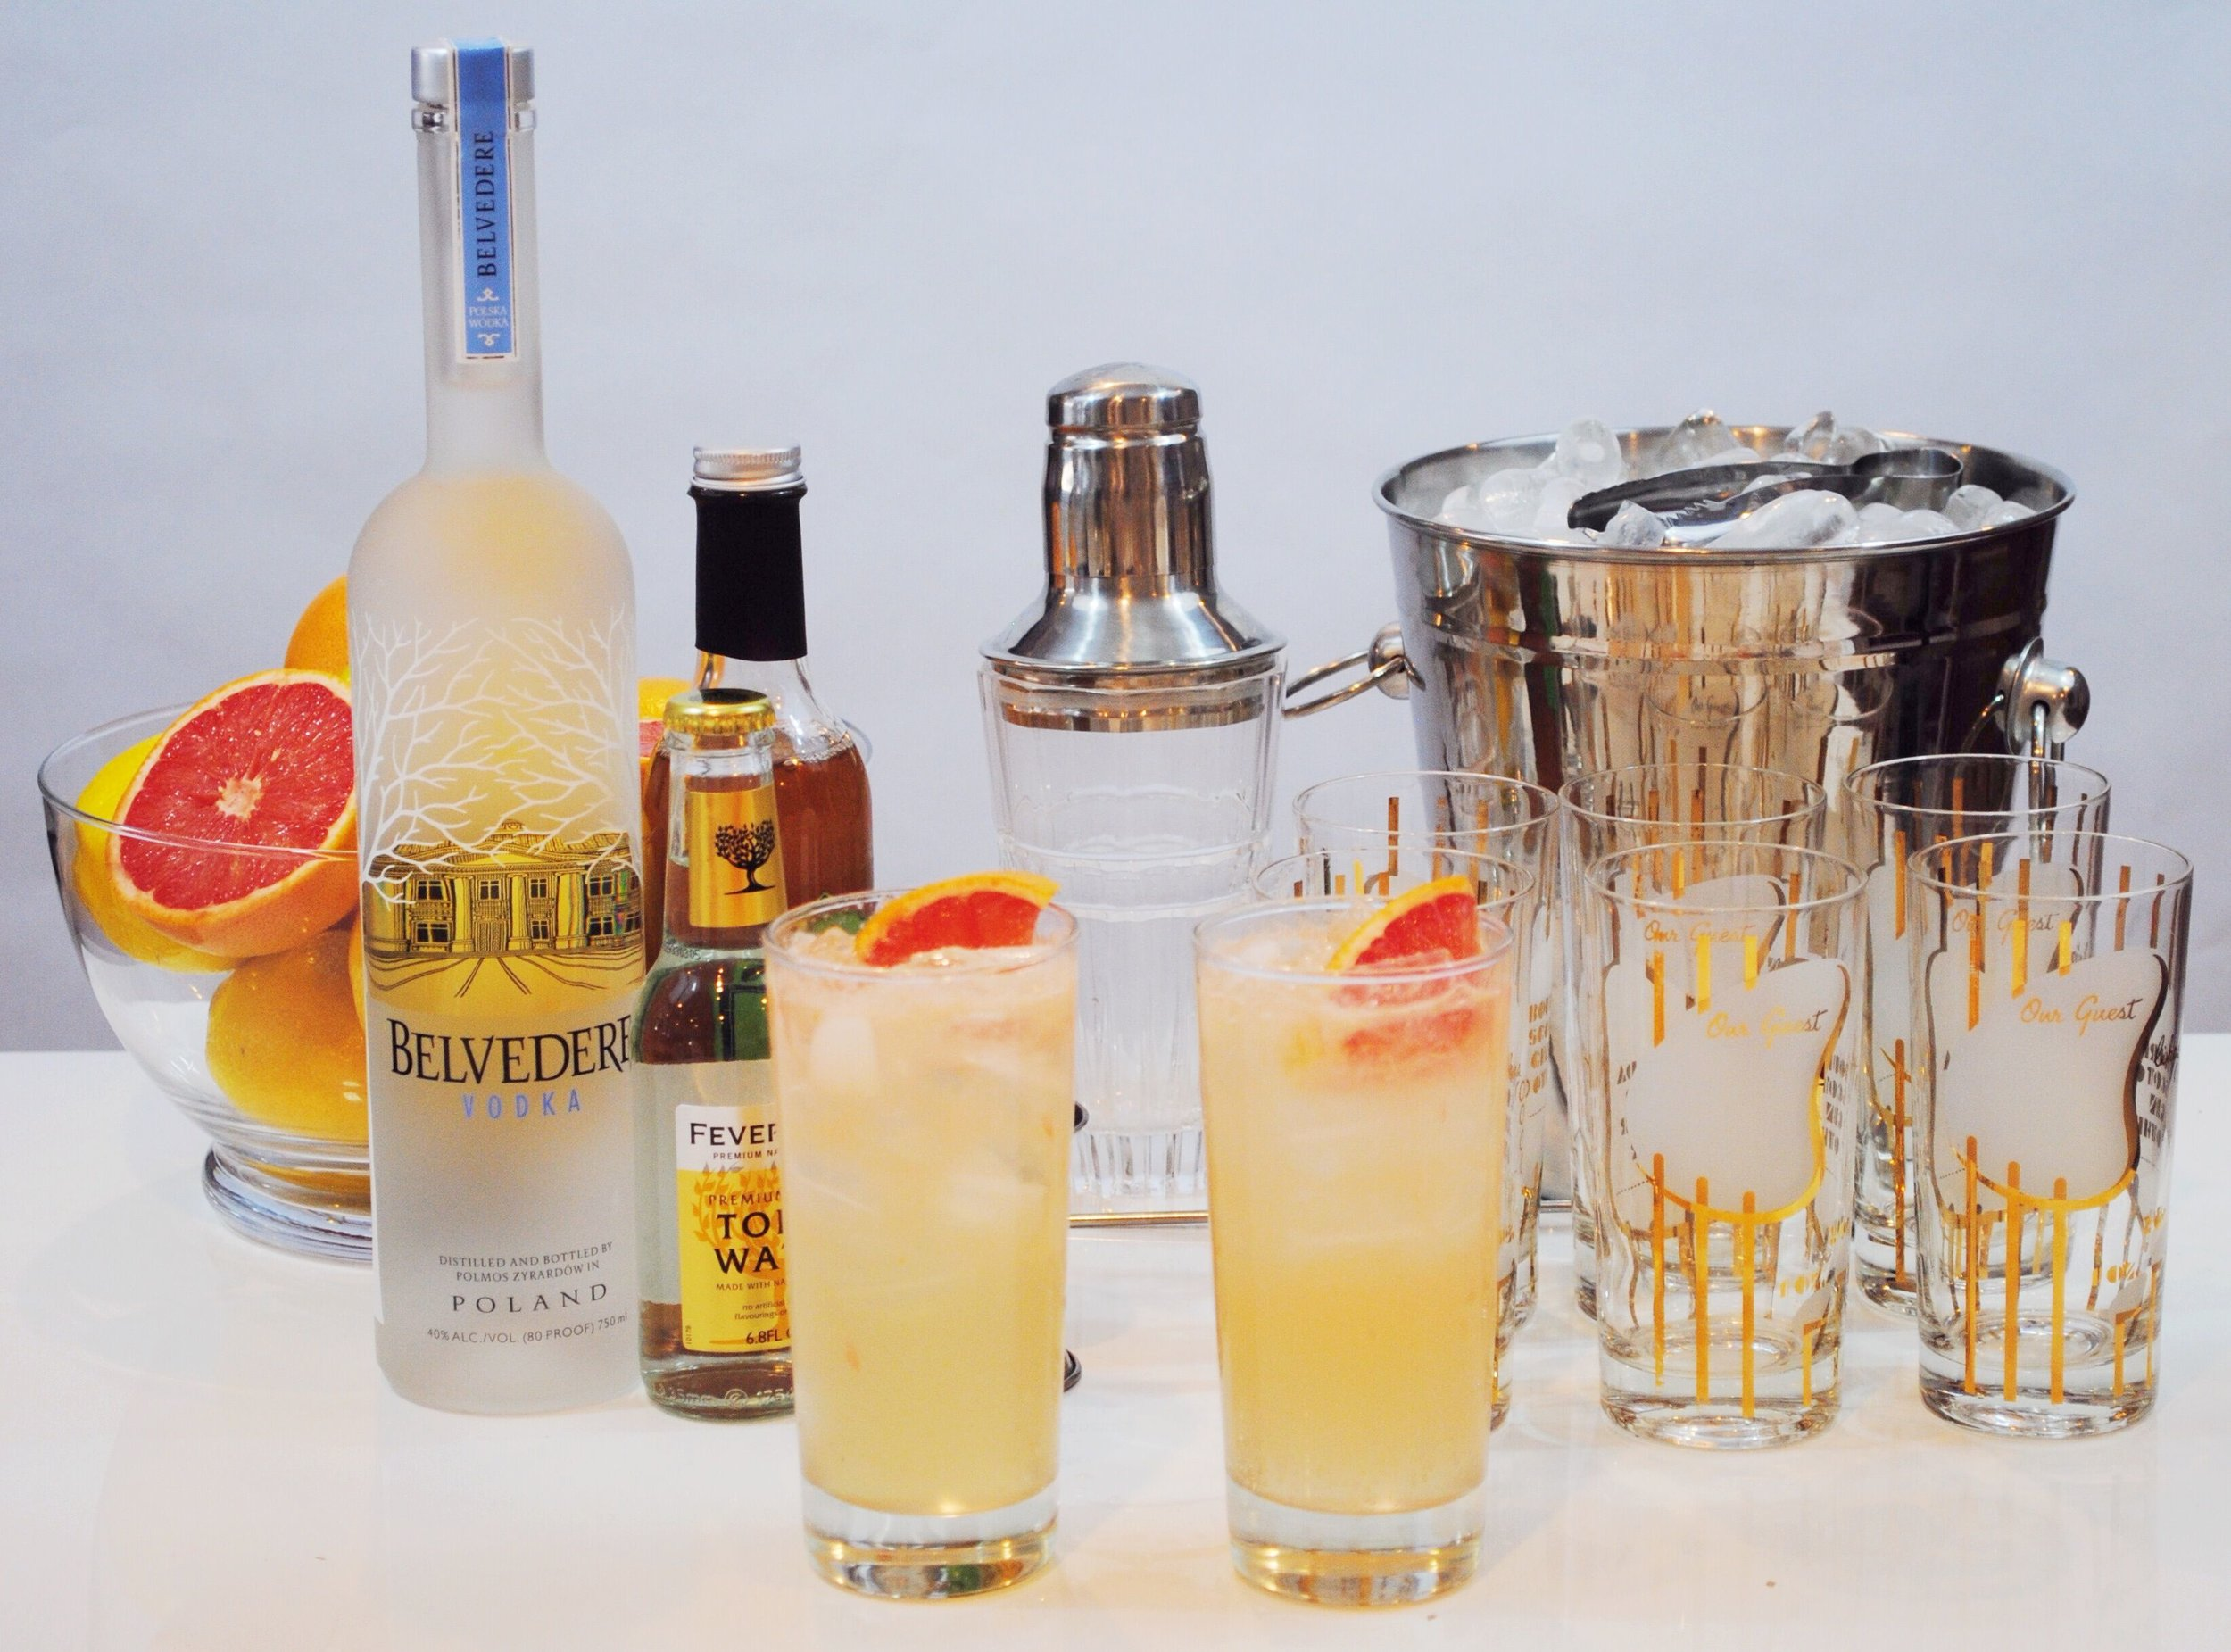 Bliss-weddings-and-events-belvedere-vodka-cocktail-recipe-ingredients4